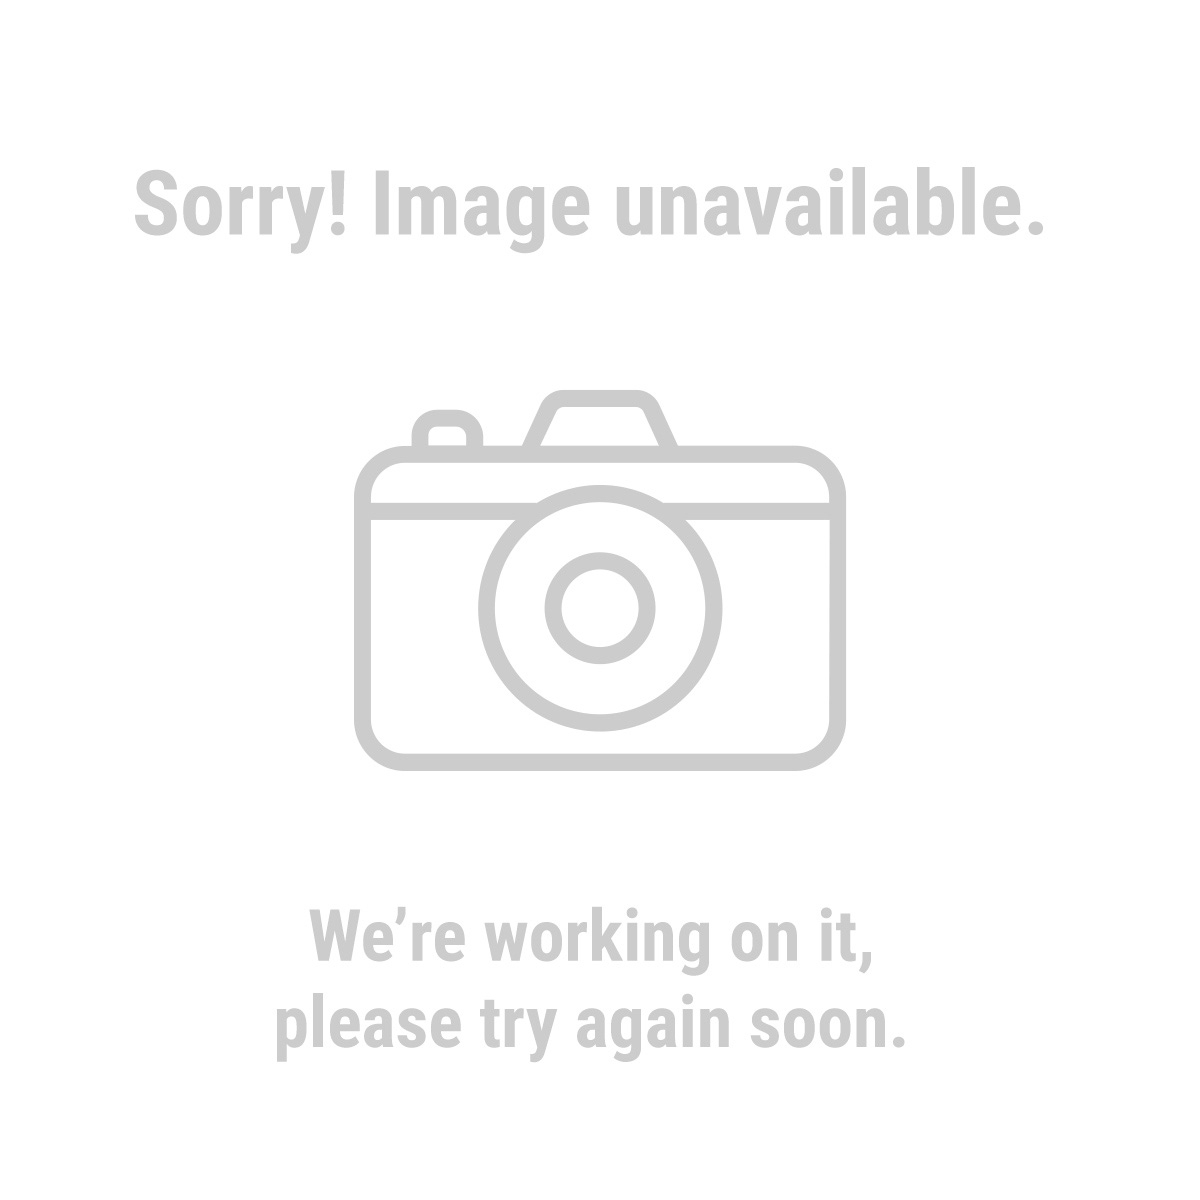 Western Safety 41981 1 Pair 9 oz. Brown Jersey Gloves